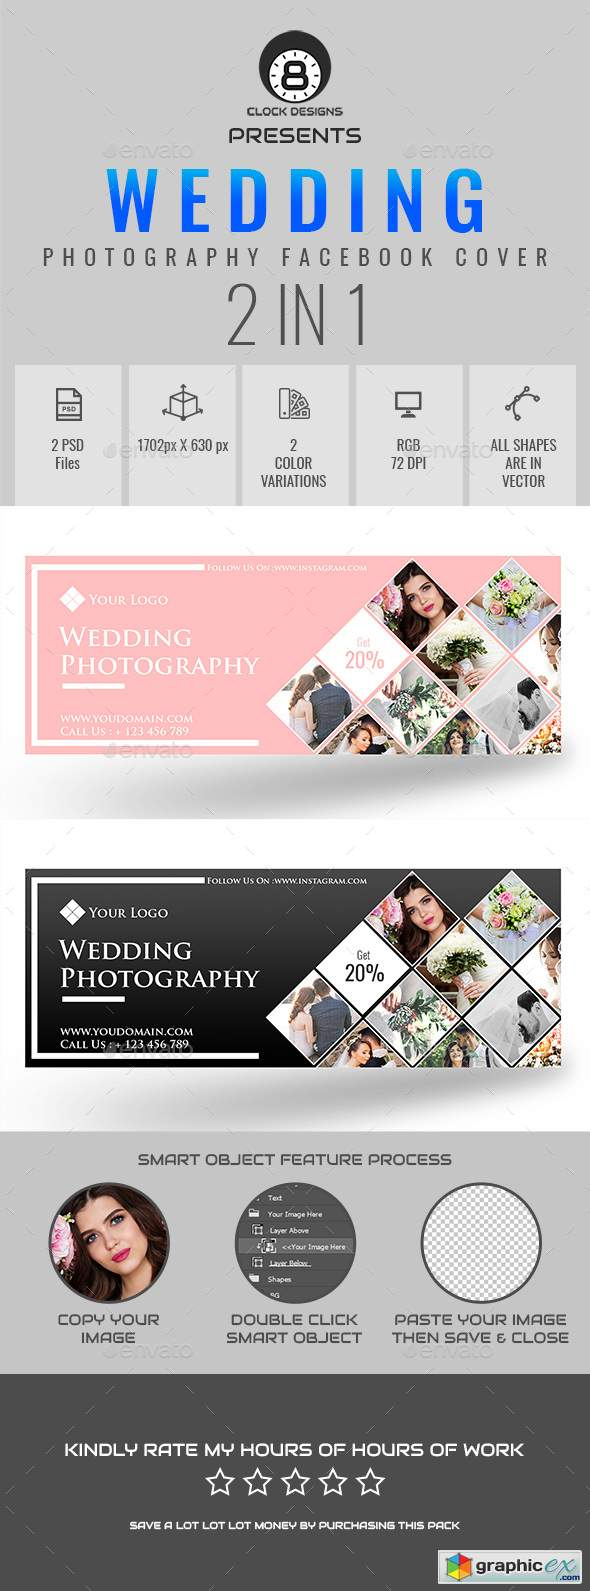 Wedding Photography Facebook Timeline Cover ( 2 in 1 )